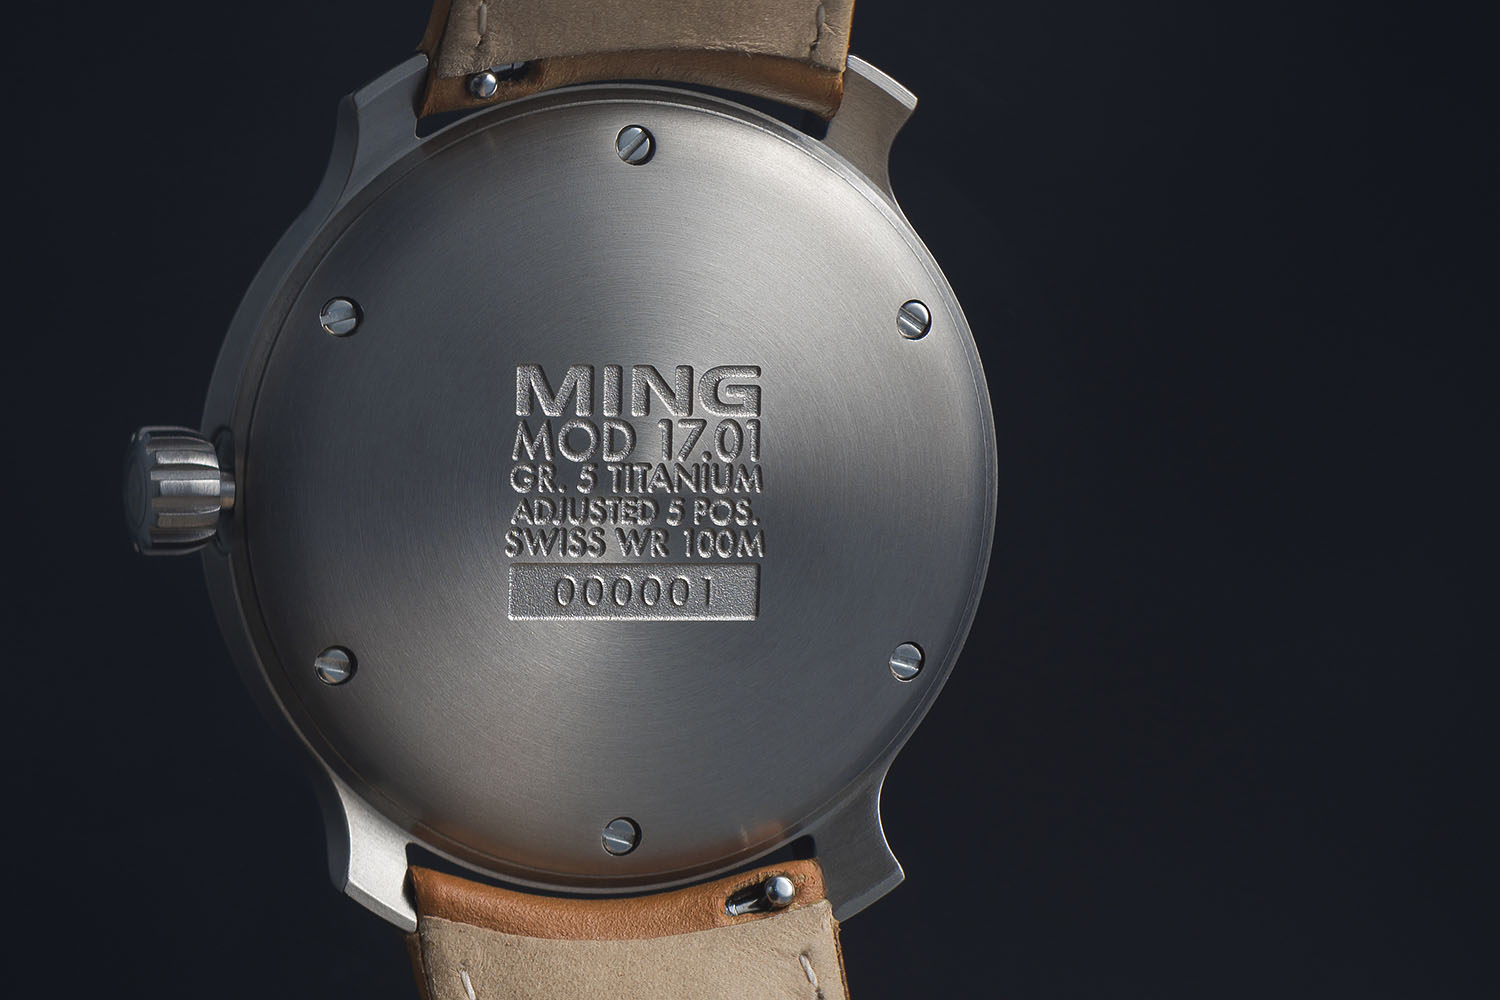 Ming 17.01 - Created by Famed Watch Photographer Ming Thein